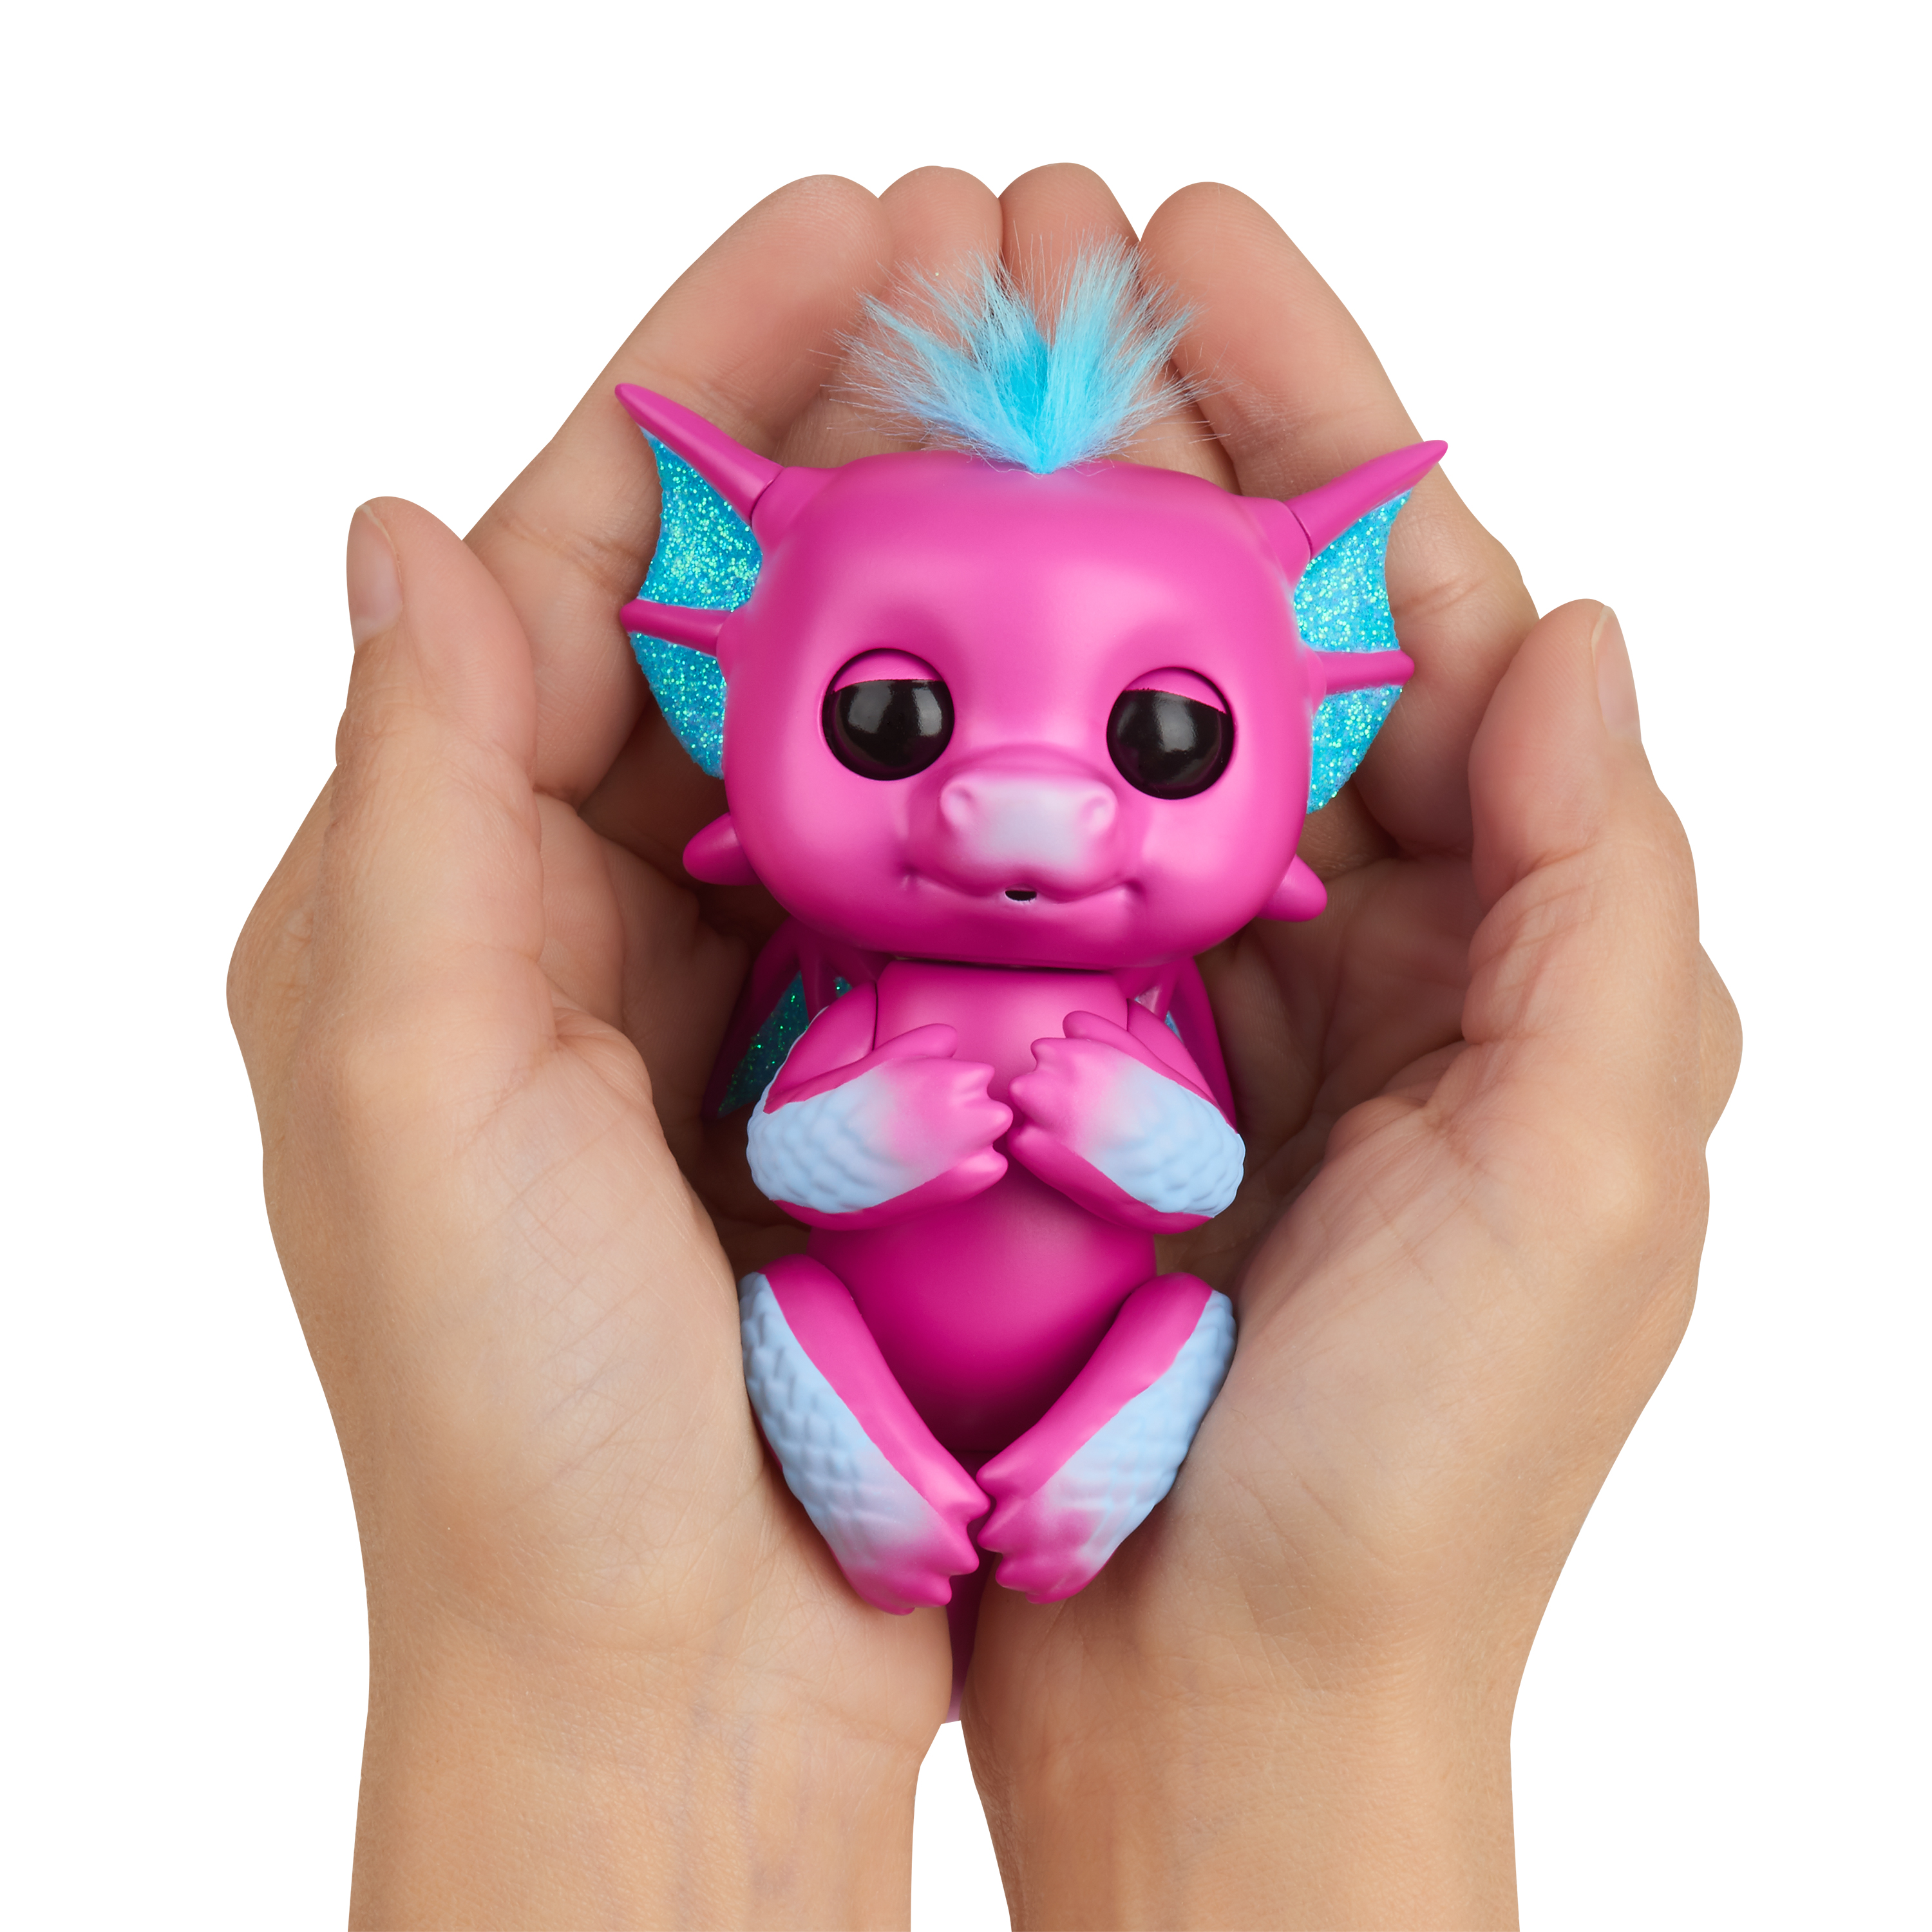 Fingerling Dragon Sandy Pink Interactive Figure Toy Wowwee Electronic & Interactive